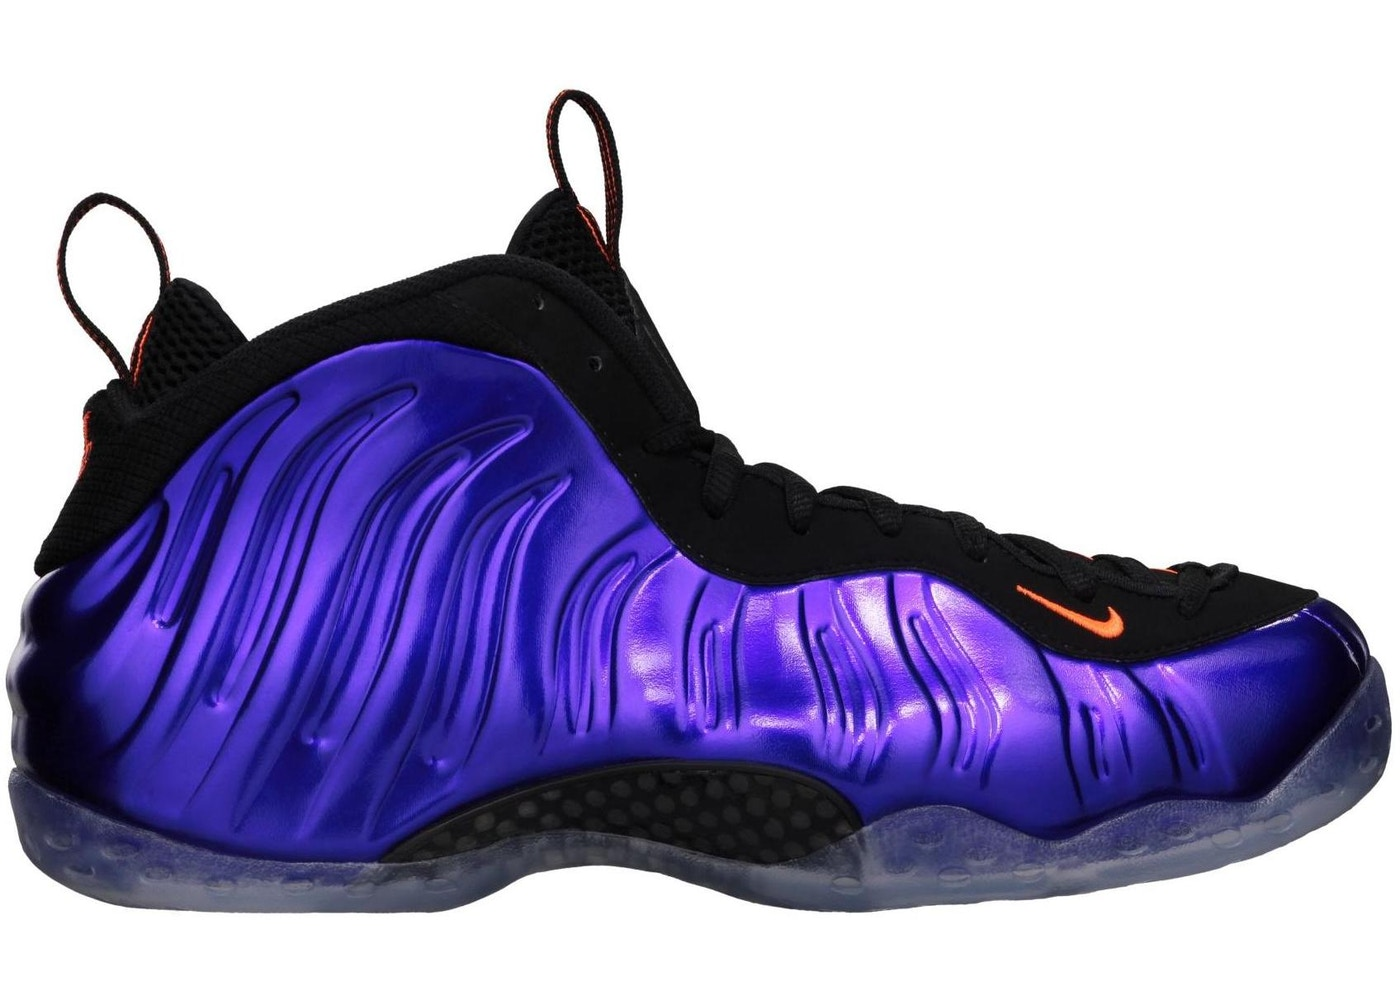 Nike Foamposite 1 Shoes - Average Sale Price 80bfdbc8f25a